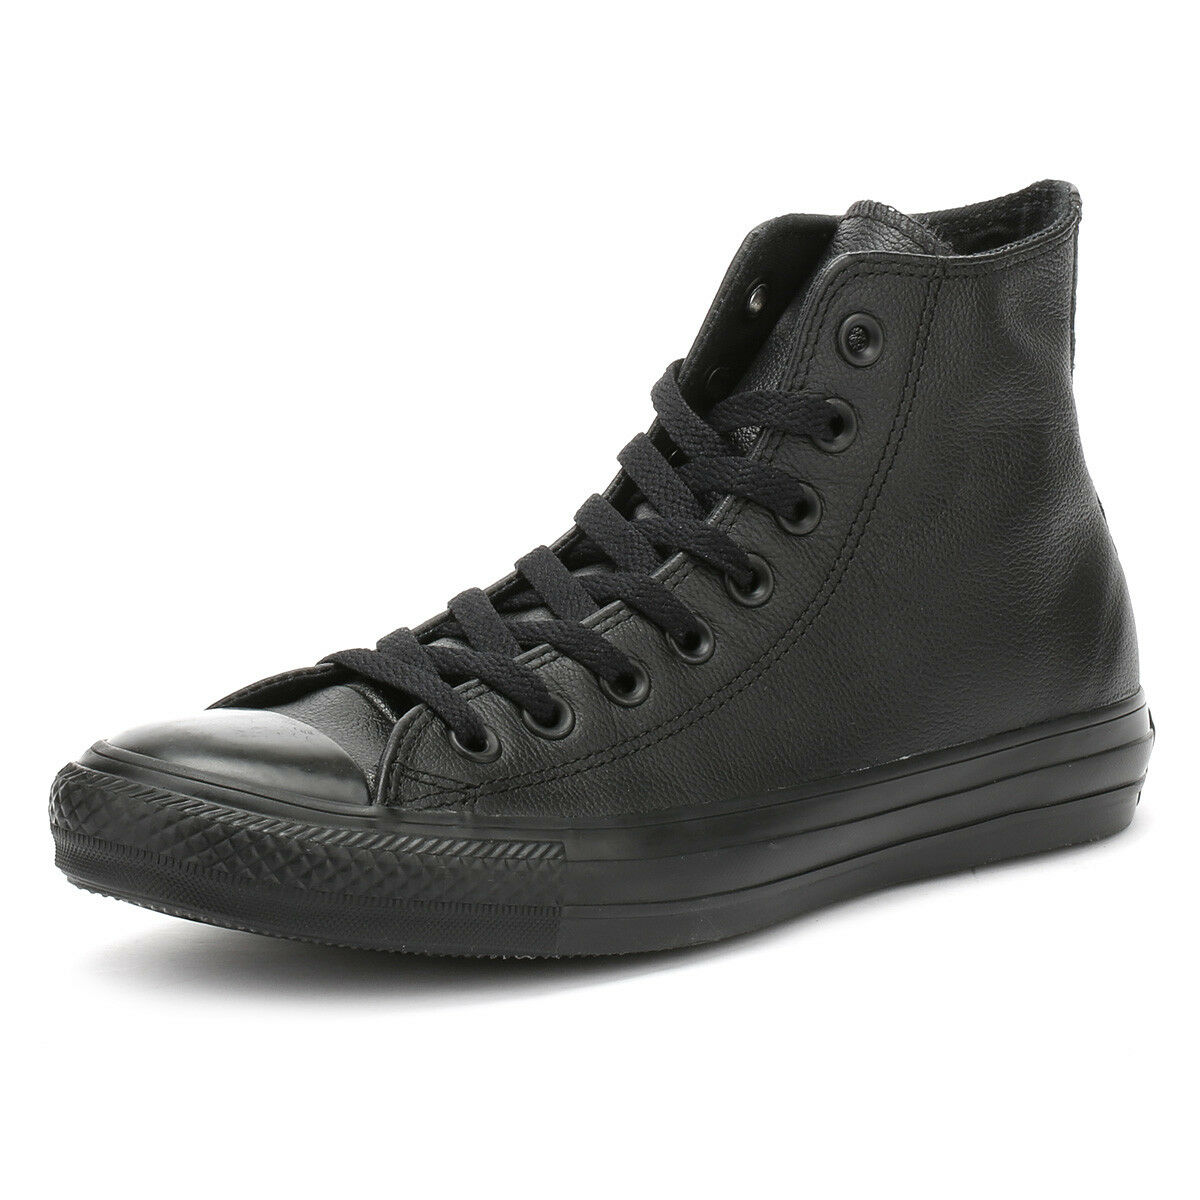 Converse Unisex Trainers Monochrome All Star Up Leather Hi Tops Lace Up Star Sneakers 5dff10